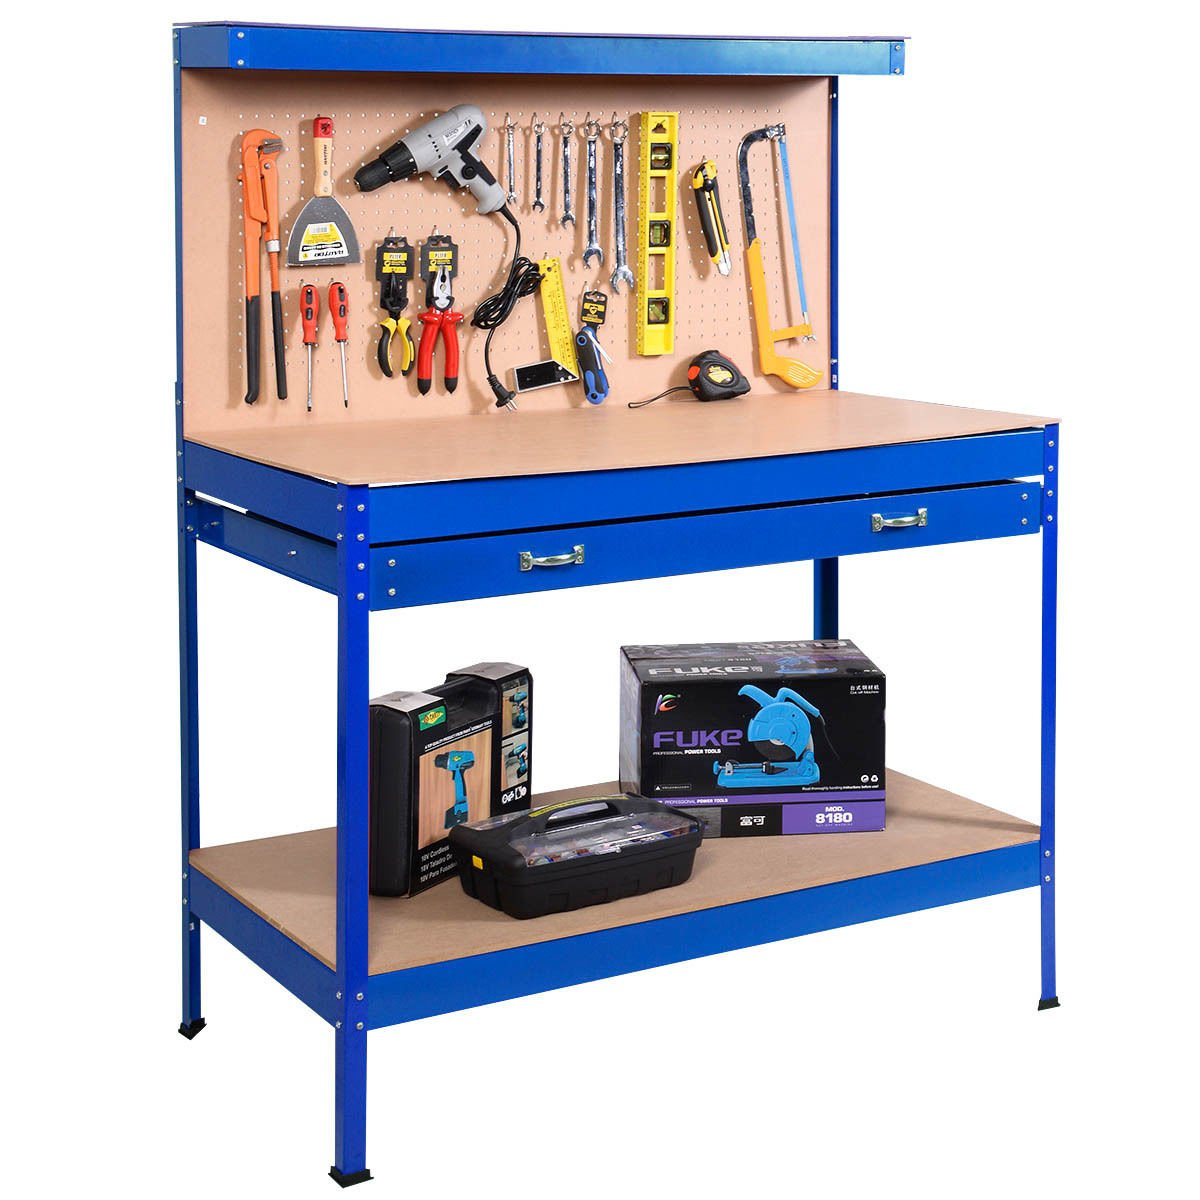 Blue Table Workshop Steel Tool Garage Storage Bench Workbench Work Heavy Duty Shop Drawer Wood Shelf New Tools